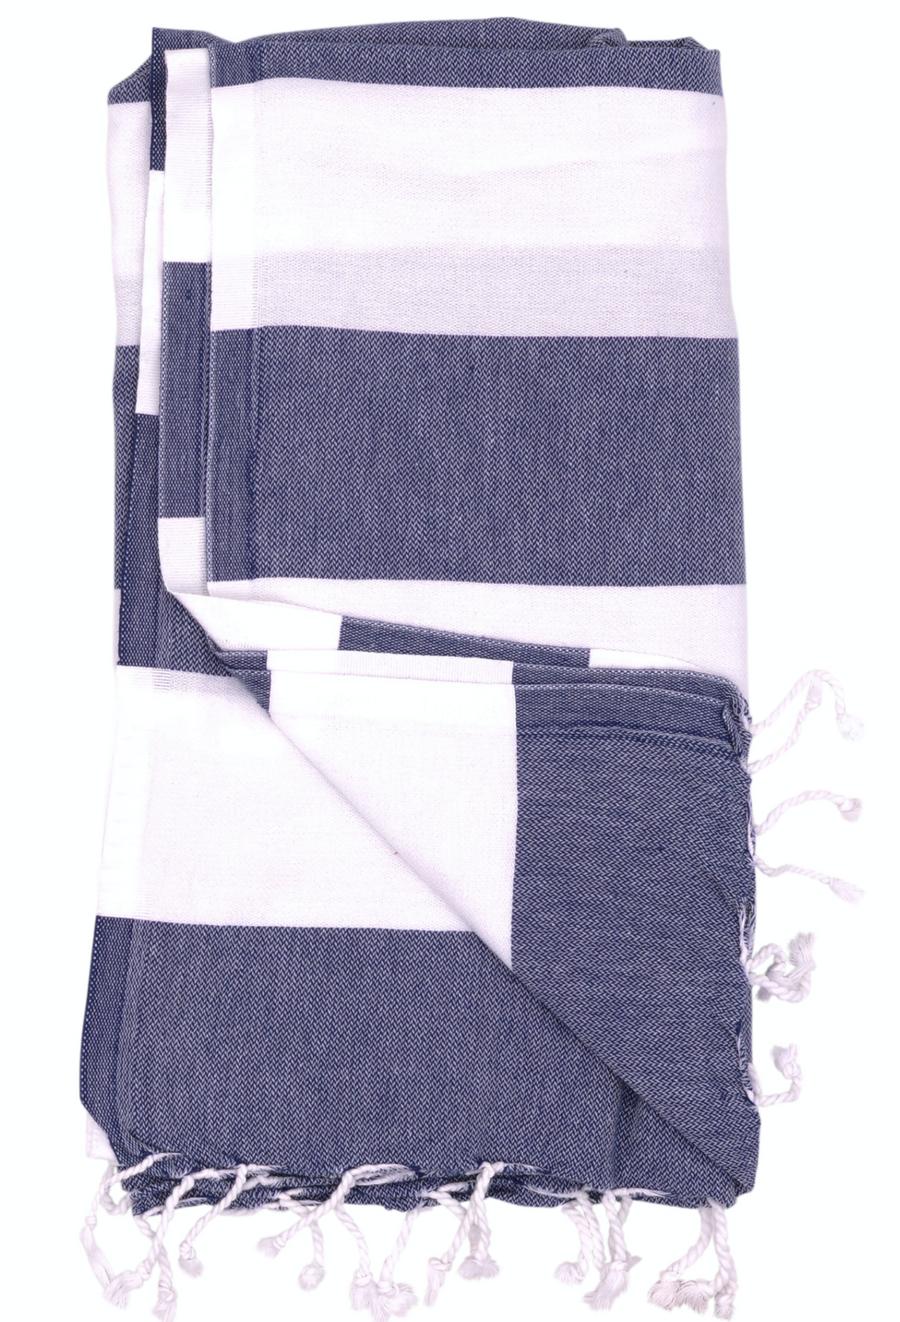 BIARRITZ THROW • SURF WYOMING x THE RIVIERA TOWEL COMPANY • 5 COLOR OPTIONS